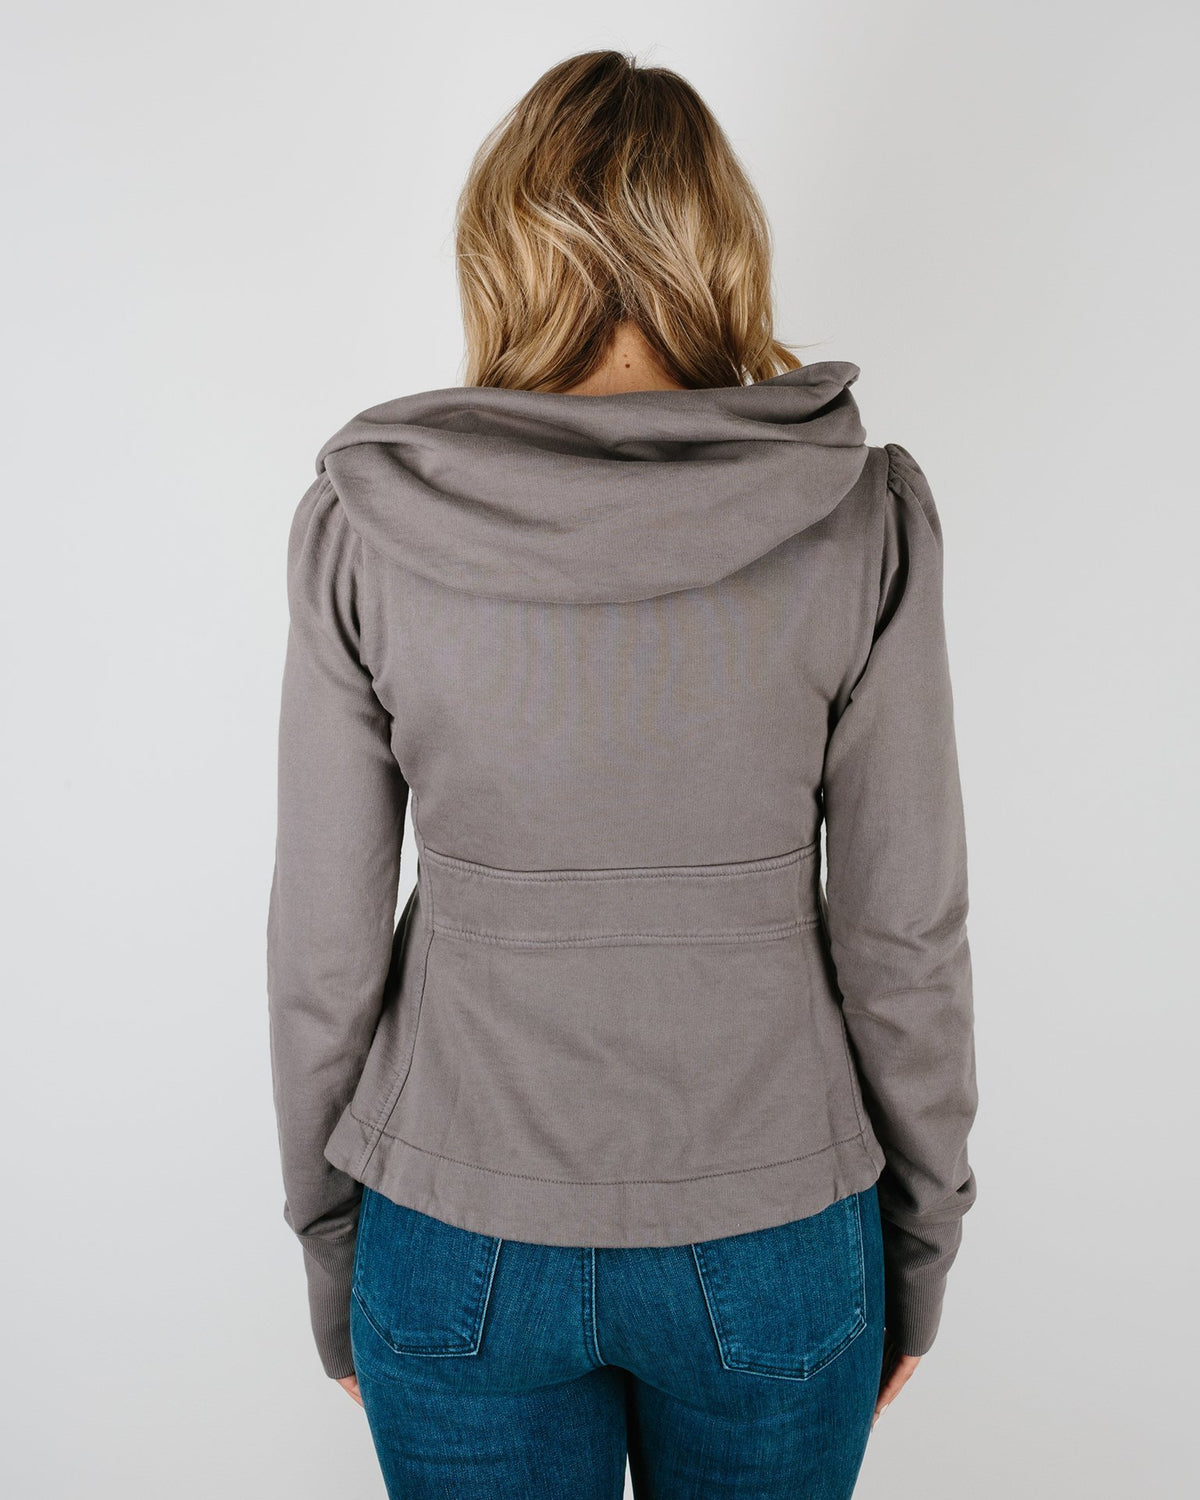 Prairie Underground Clothing Cloak Hoodie in Dior Gray